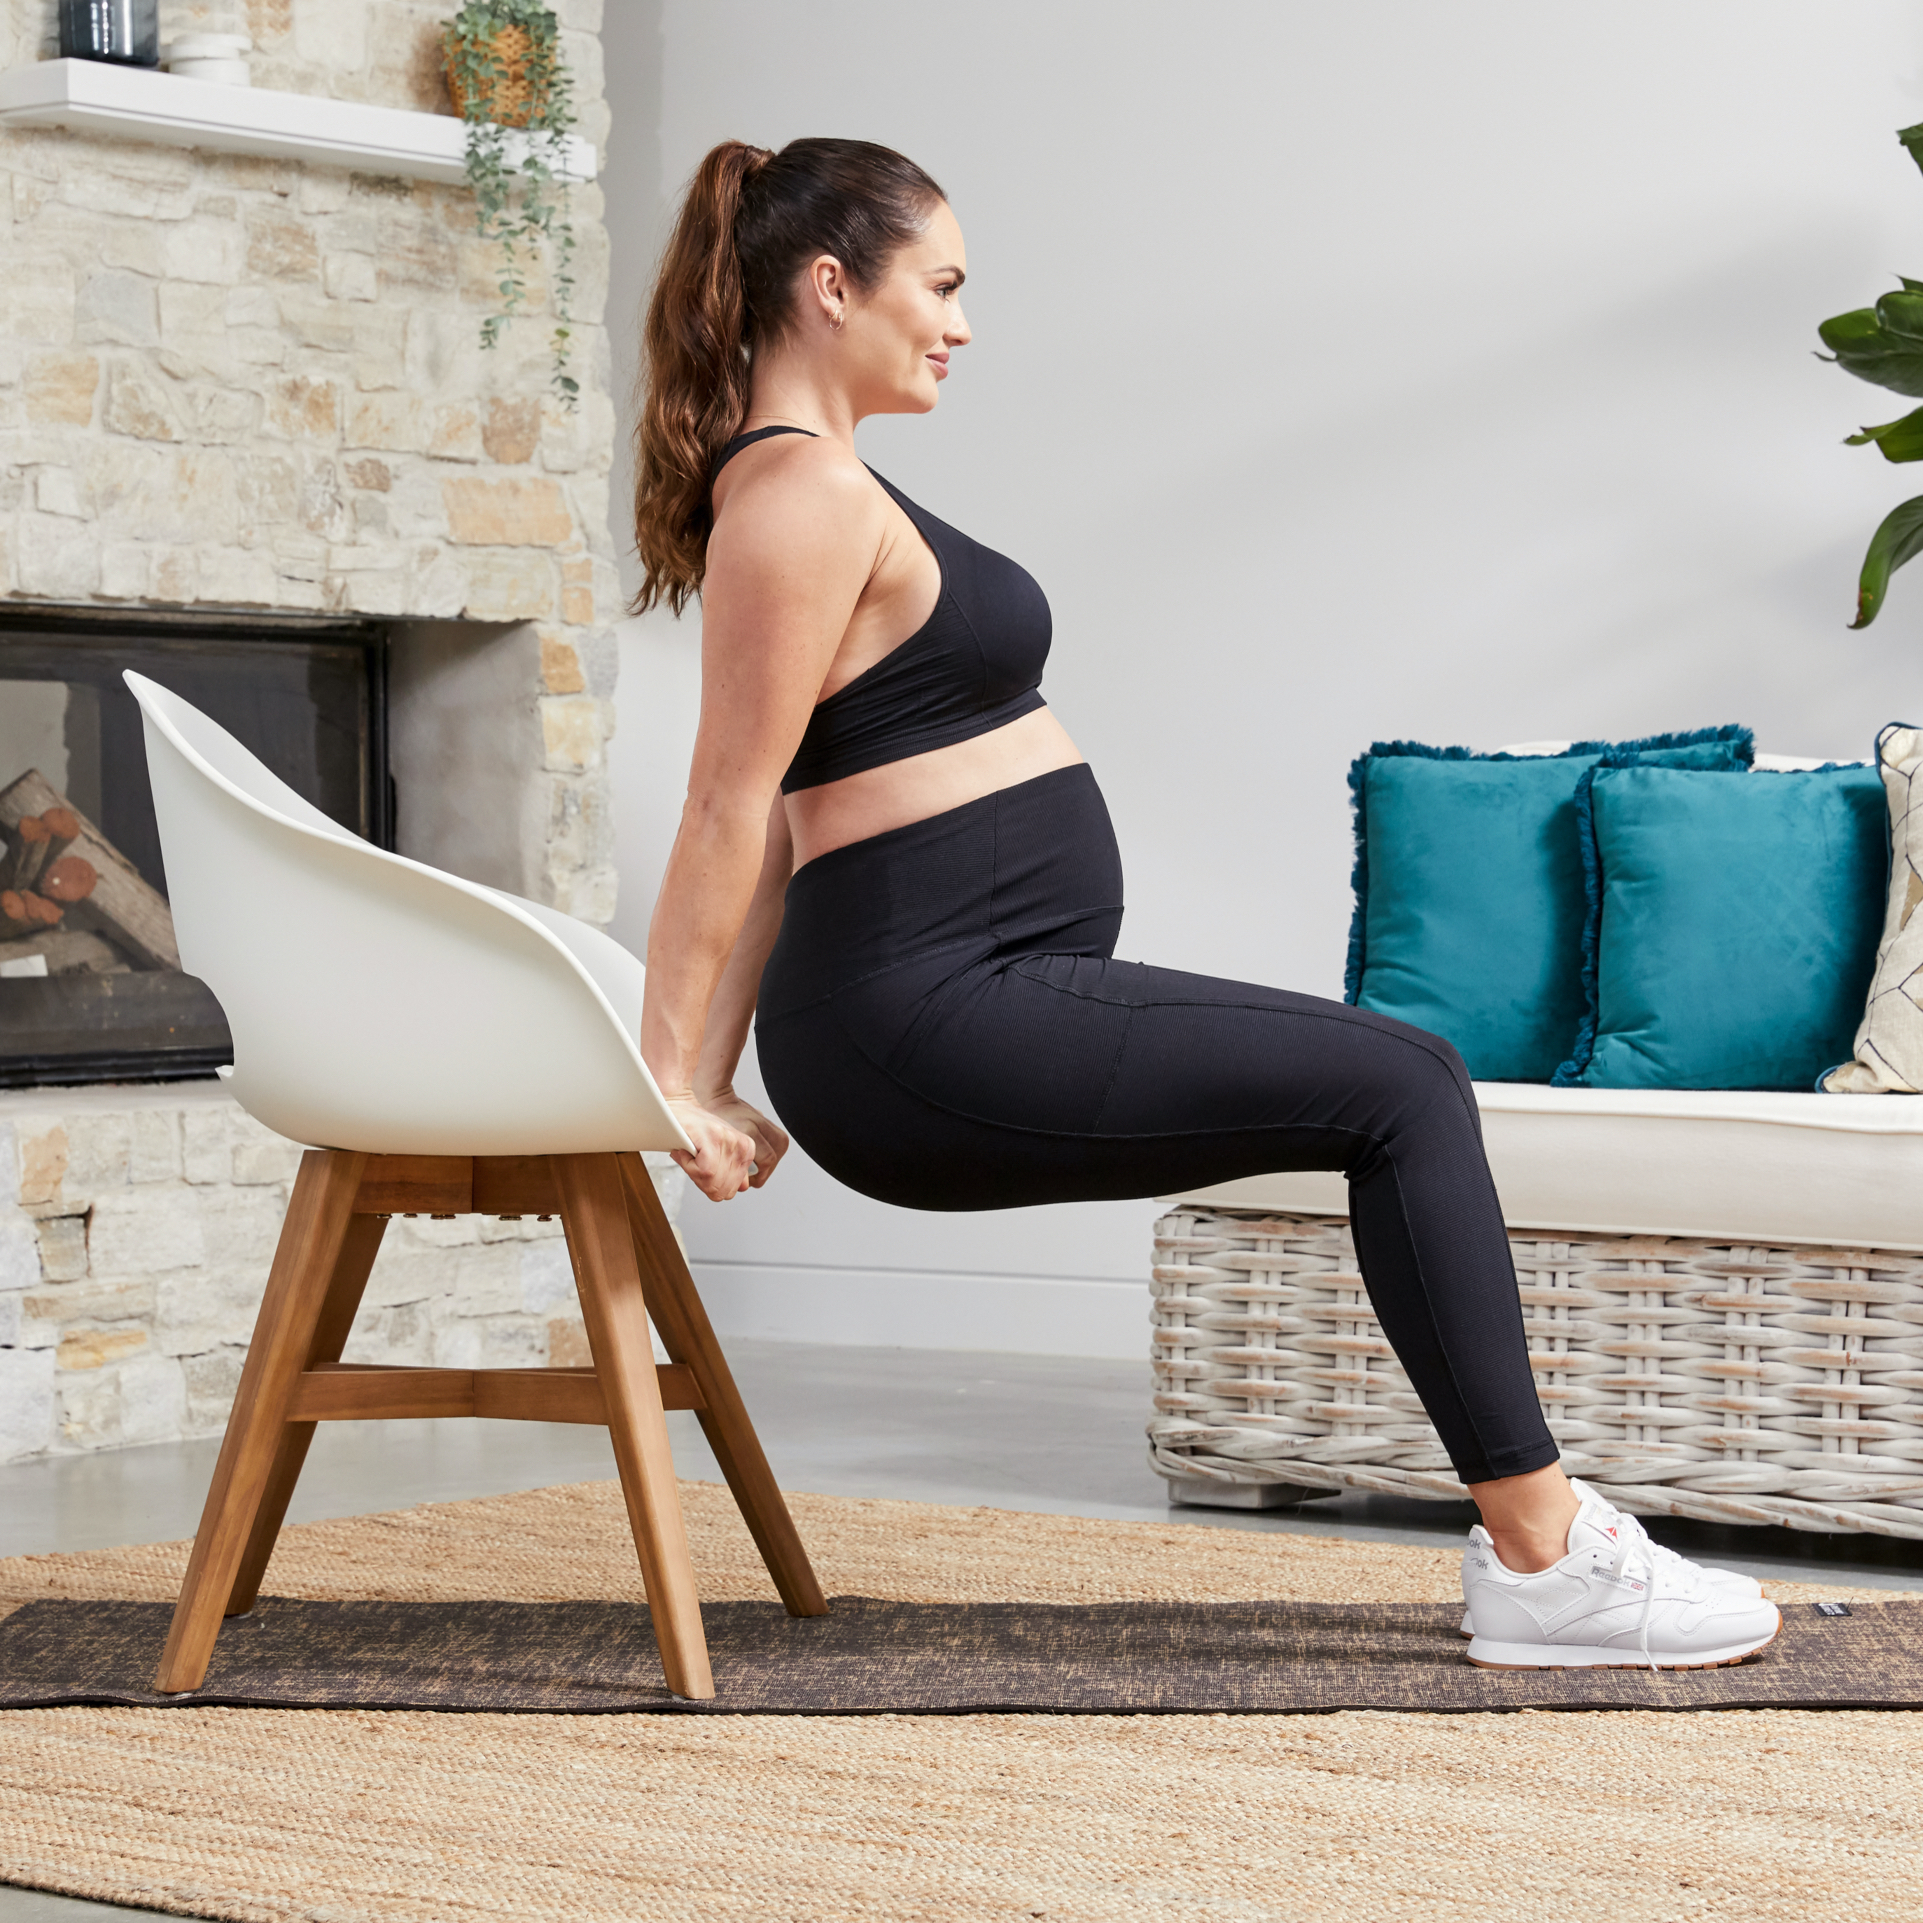 Emily Skye Created a New Pregnancy Workout Program to Guide You Through Each Trimester